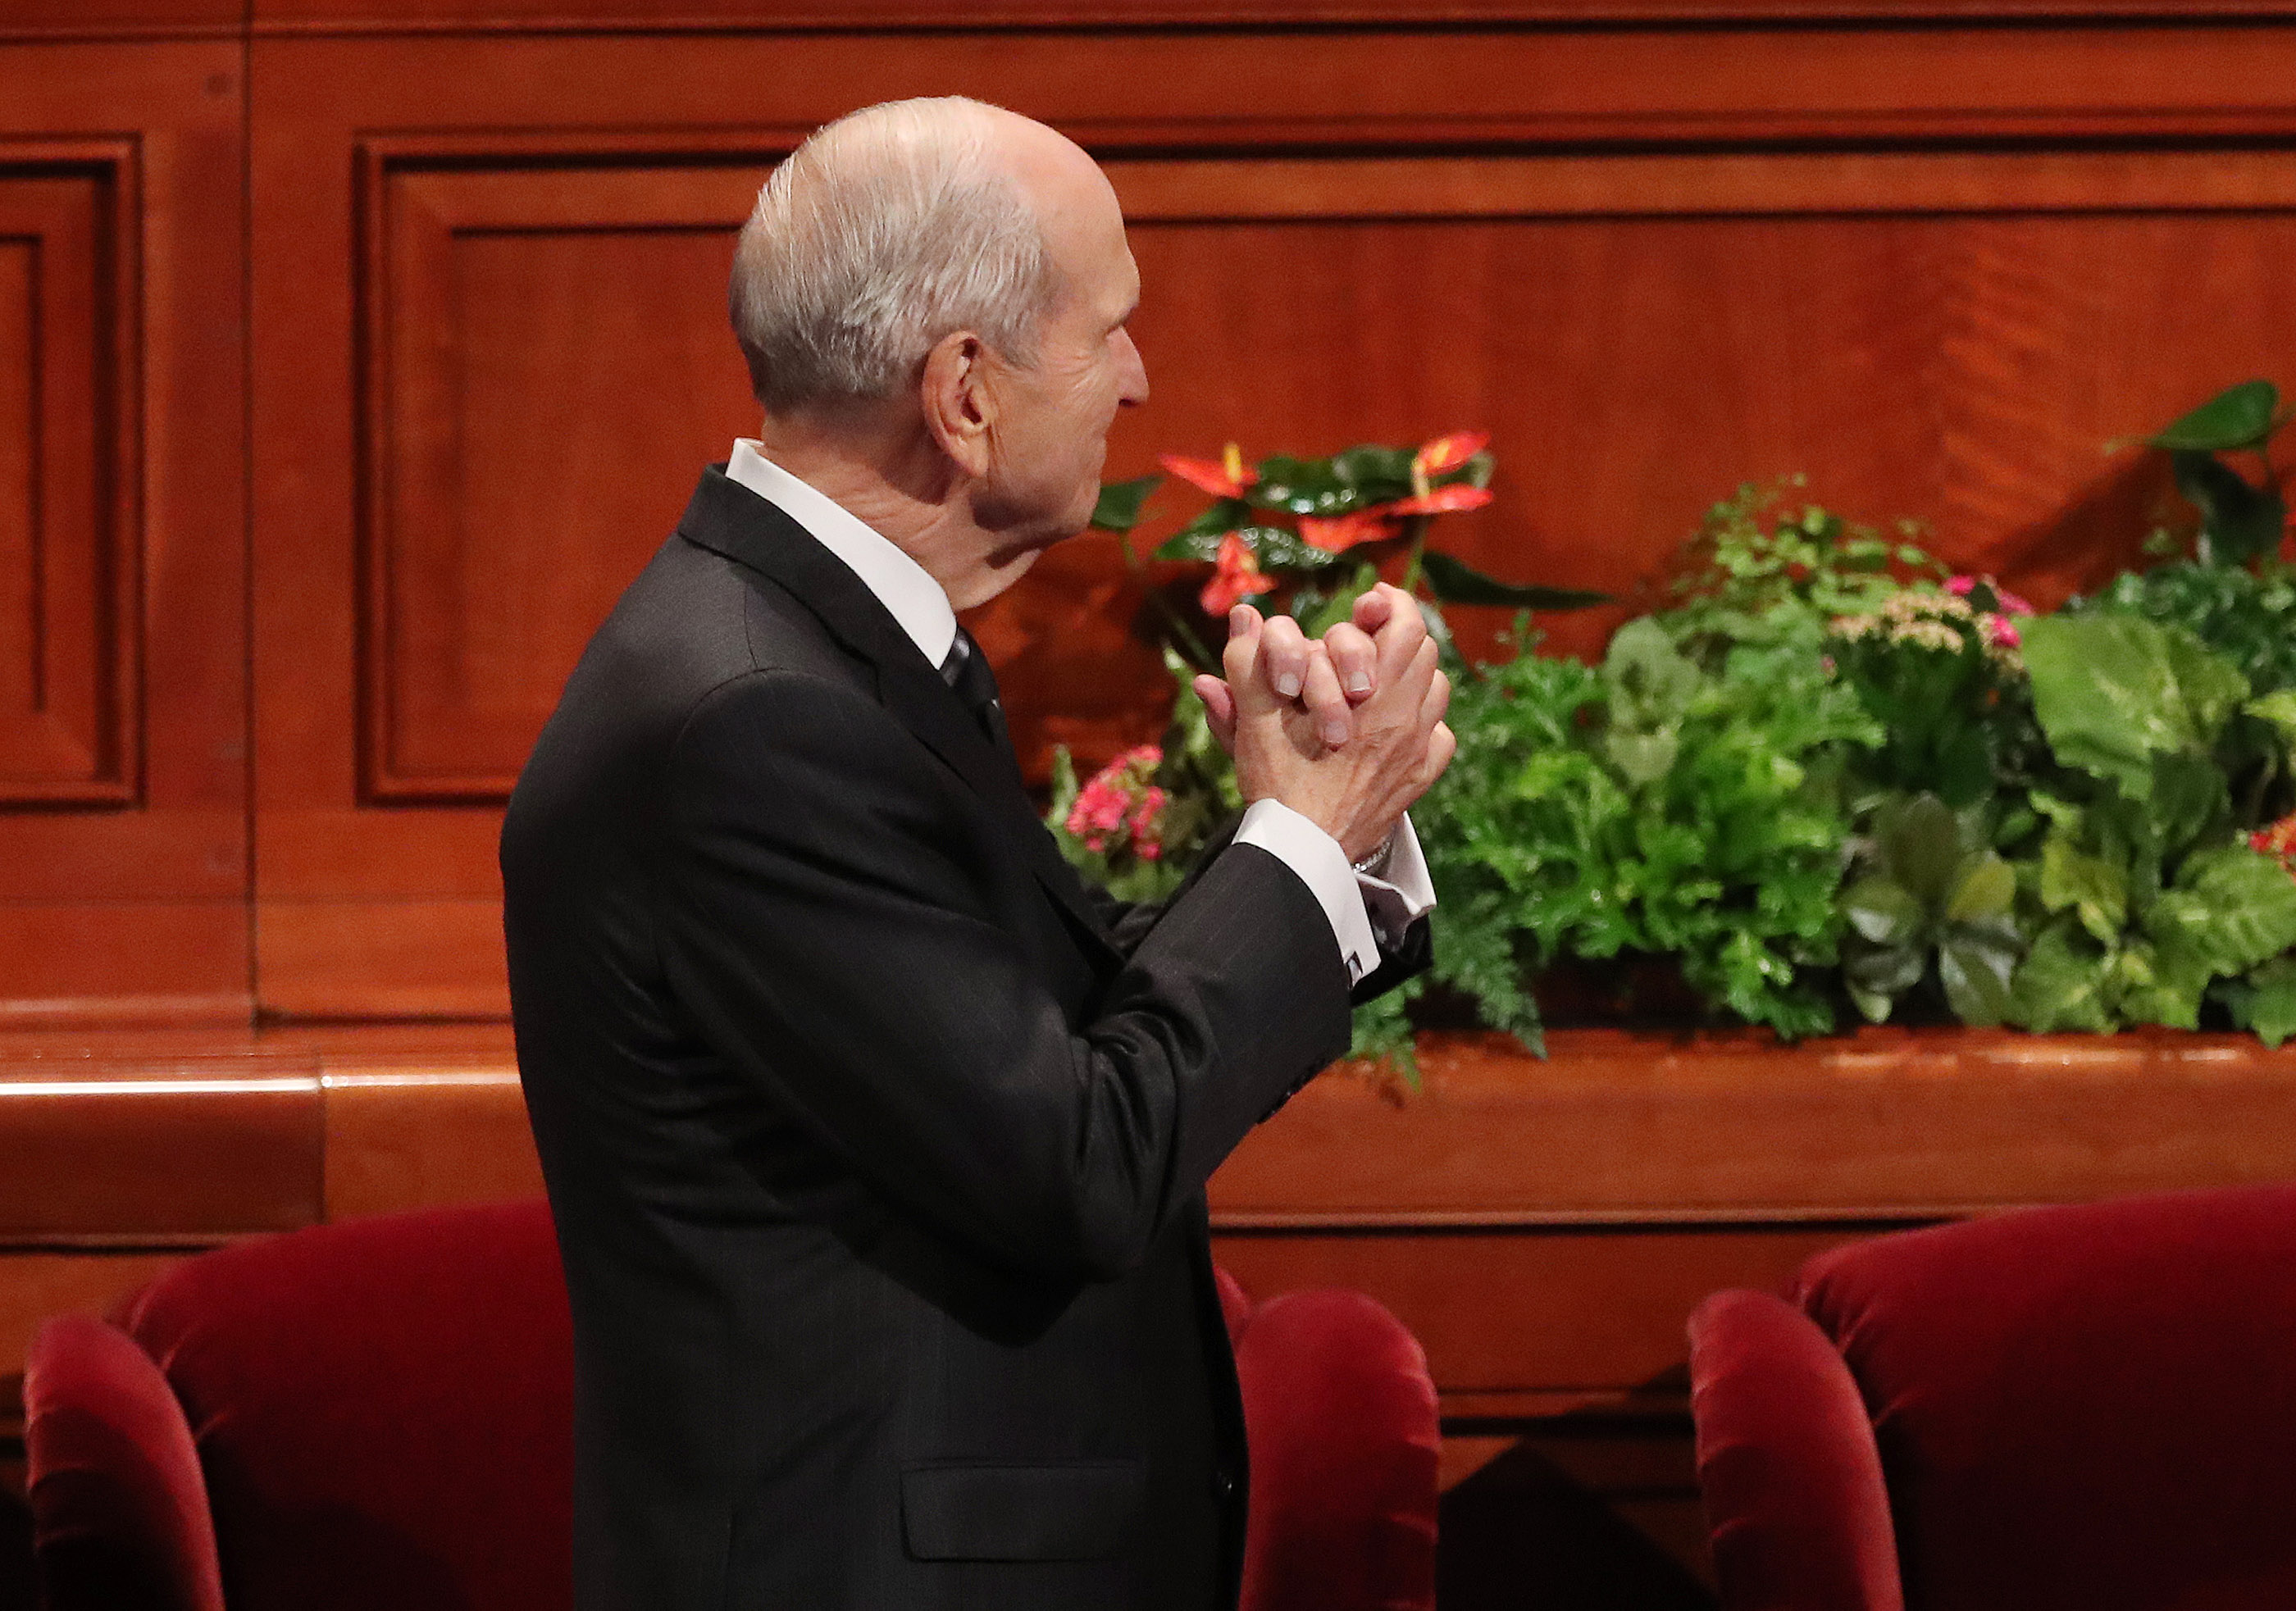 President Russell M. Nelson of The Church of Jesus Christ of Latter-day Saints, acknowledges the Tabernacle Choir at Temple Square during the Saturday morning session of the 188th Semiannual General Conference of The Church of Jesus Christ of Latter-day Saints in the Conference Center in Salt Lake City on Saturday, Oct. 6, 2018.